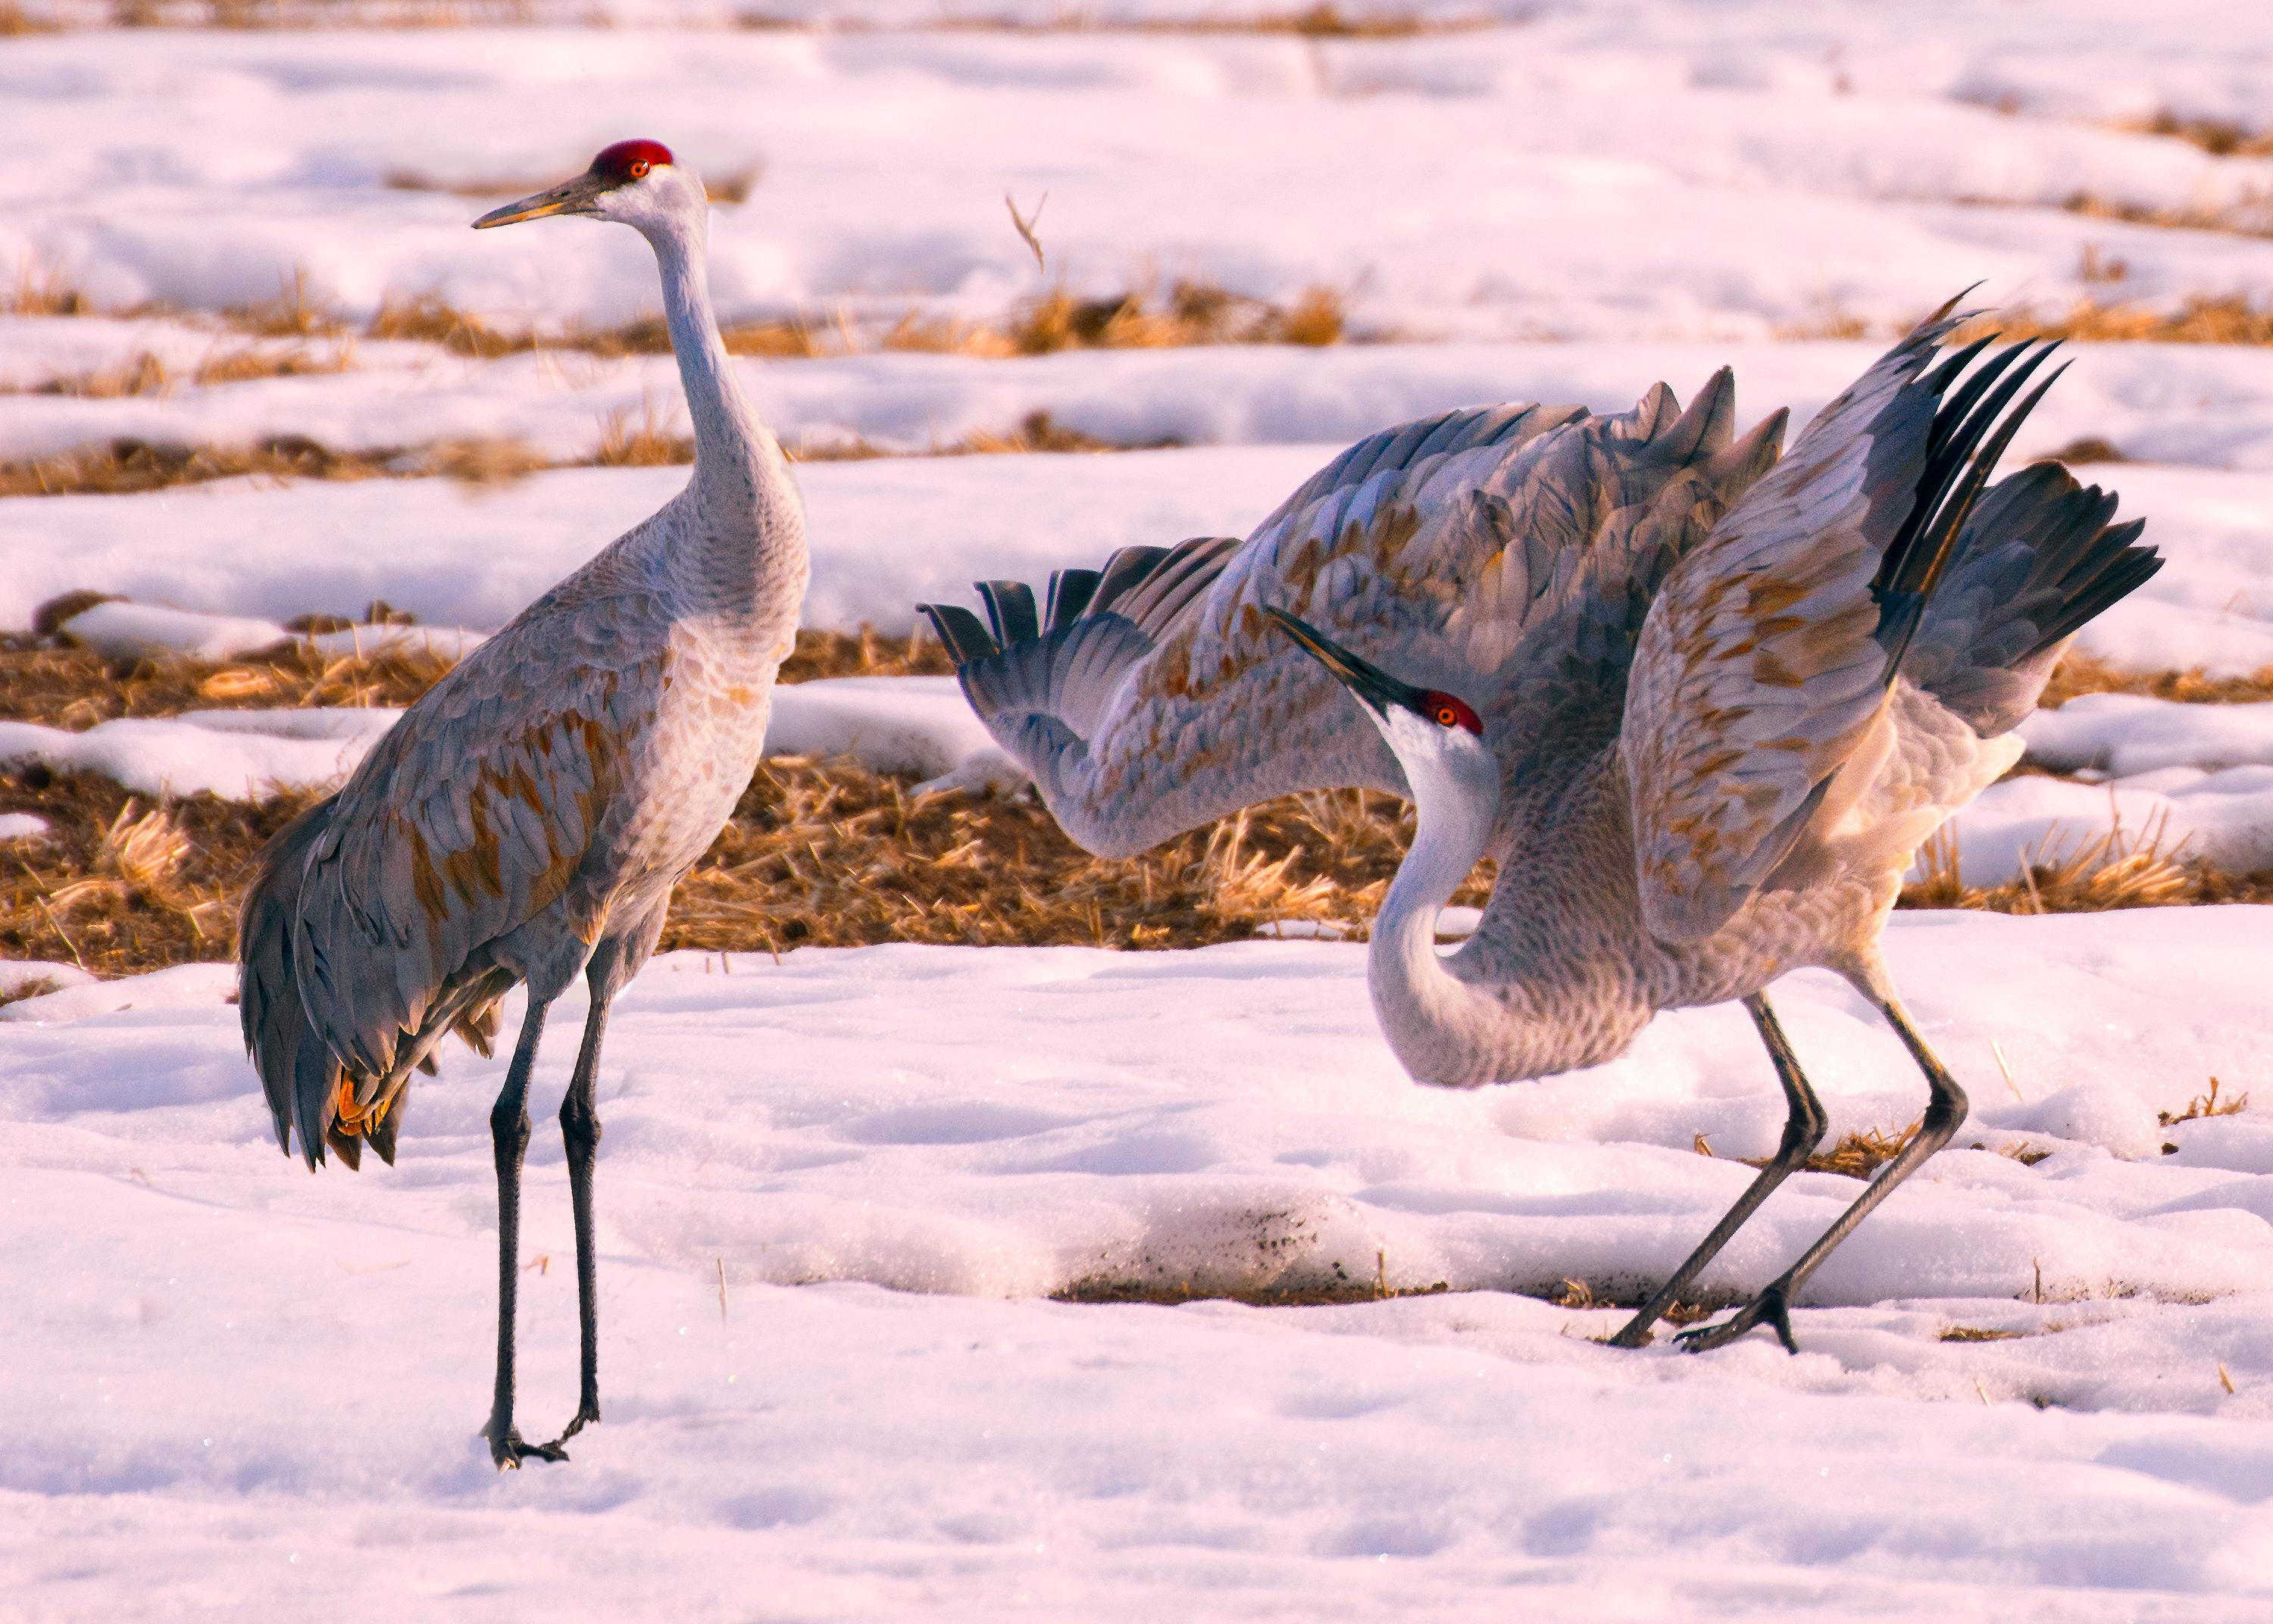 Free download high resolution image - free image free photo free stock image public domain picture -Sandhill Crane Couple in Snow